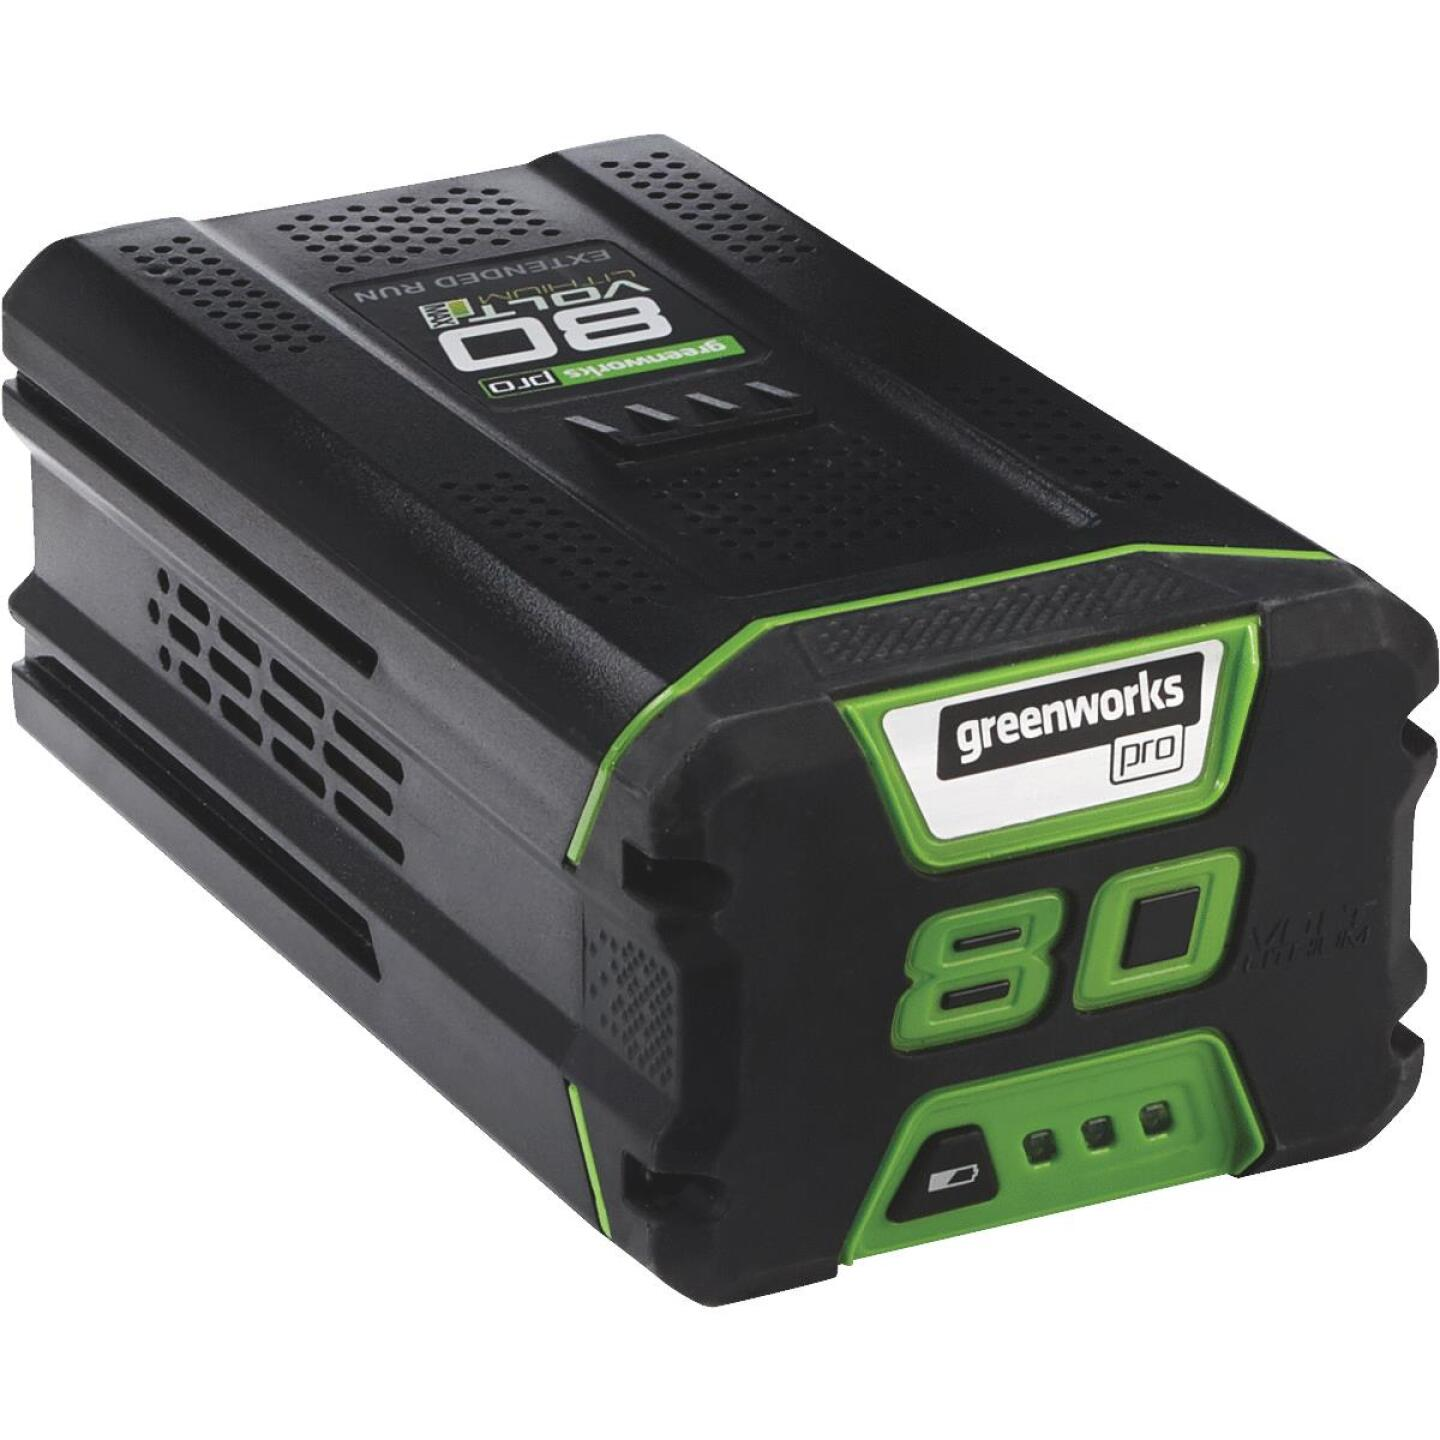 Greenworks Pro 80V 2AH Tool Replacement Battery Image 1